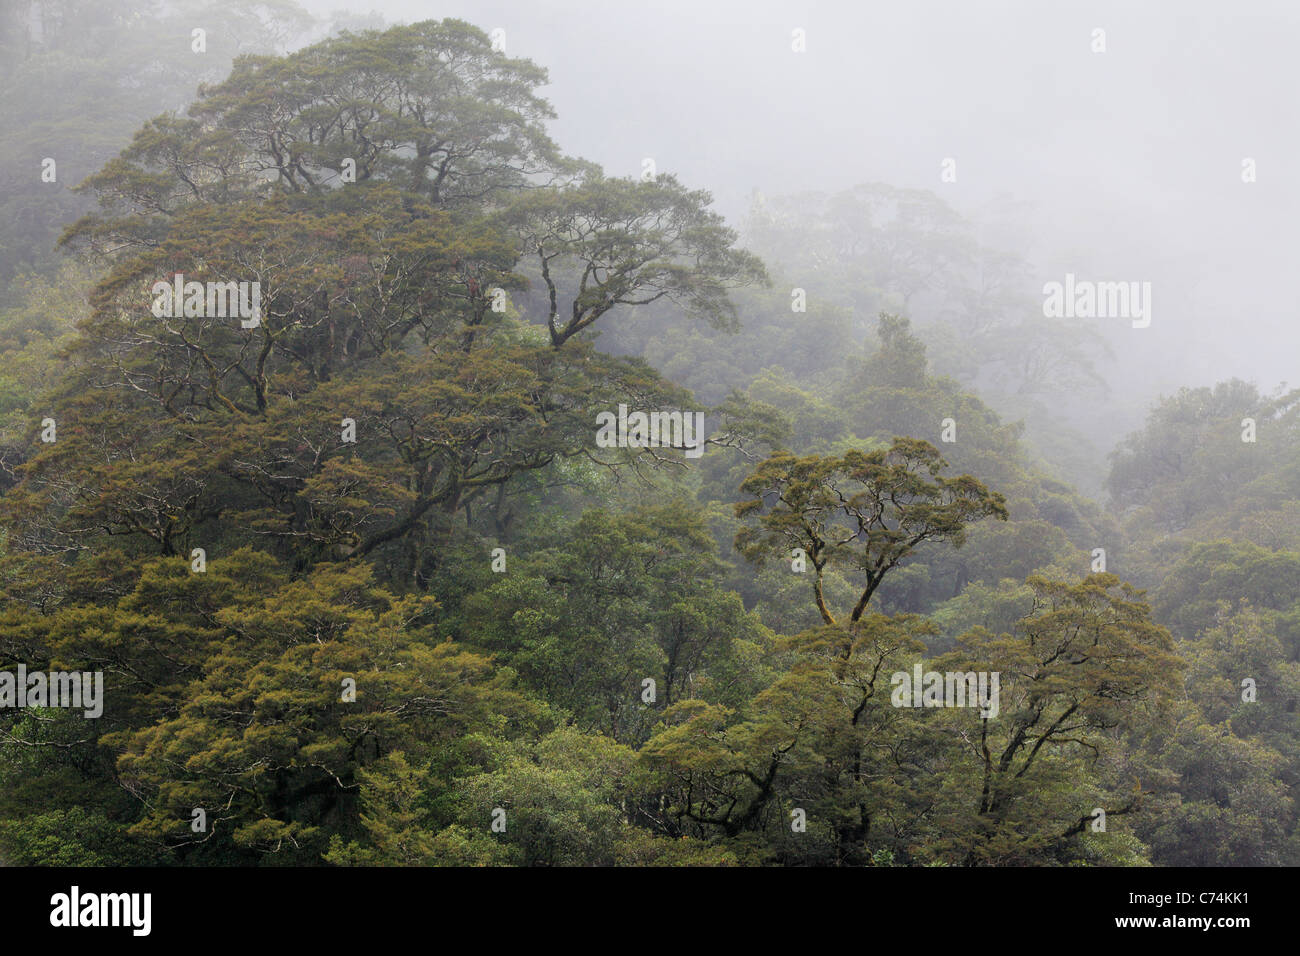 Mist envelopes the Beech forest along the Haast River in Haast Pass, New Zealand - Stock Image